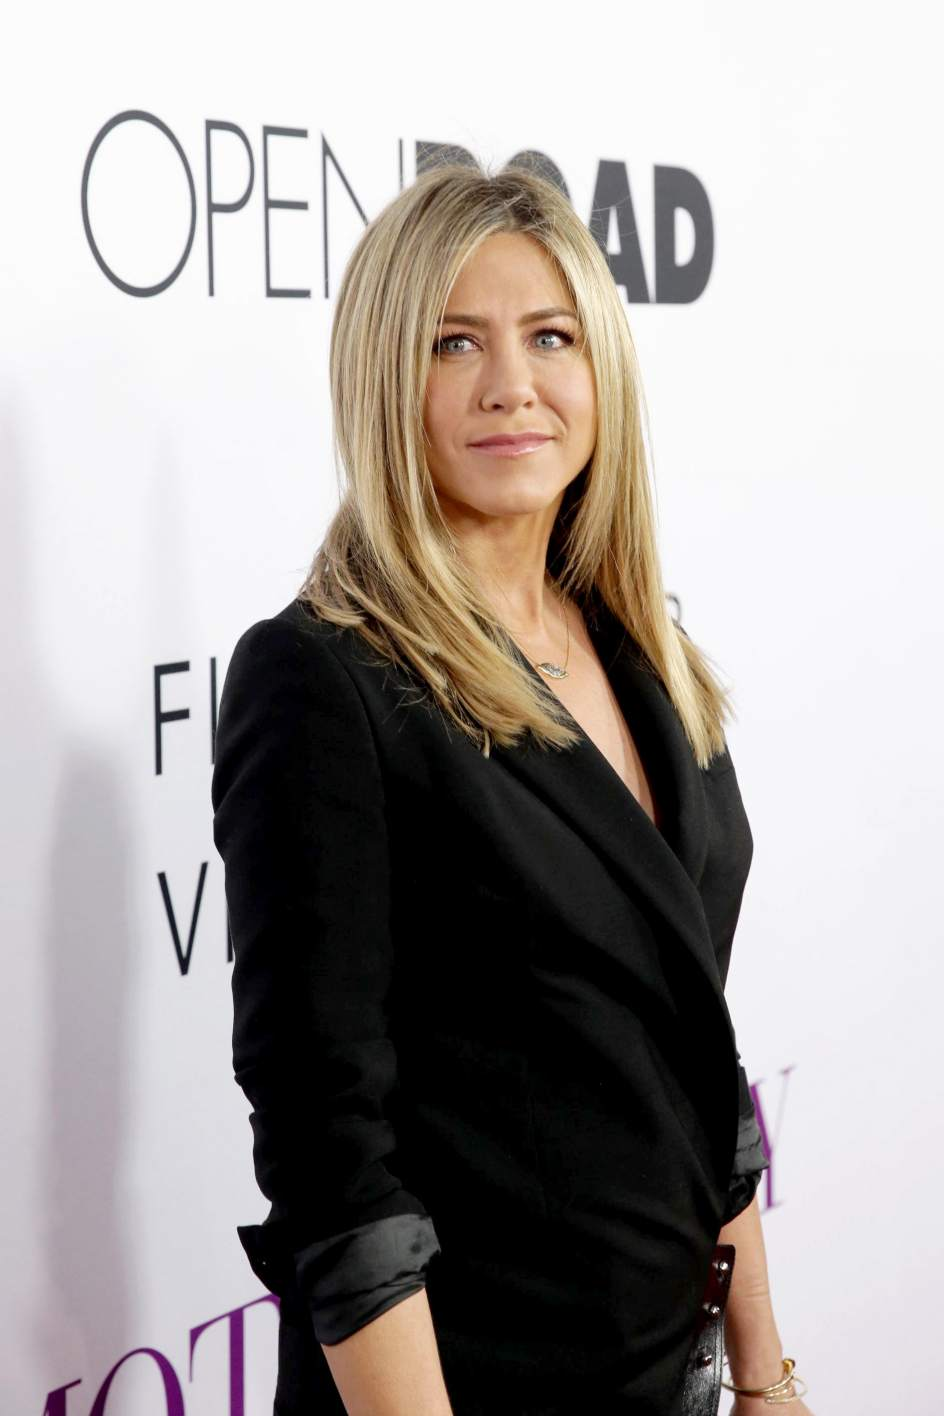 39 people 39 elige a jennifer aniston como la mujer m s bella de 2016. Black Bedroom Furniture Sets. Home Design Ideas